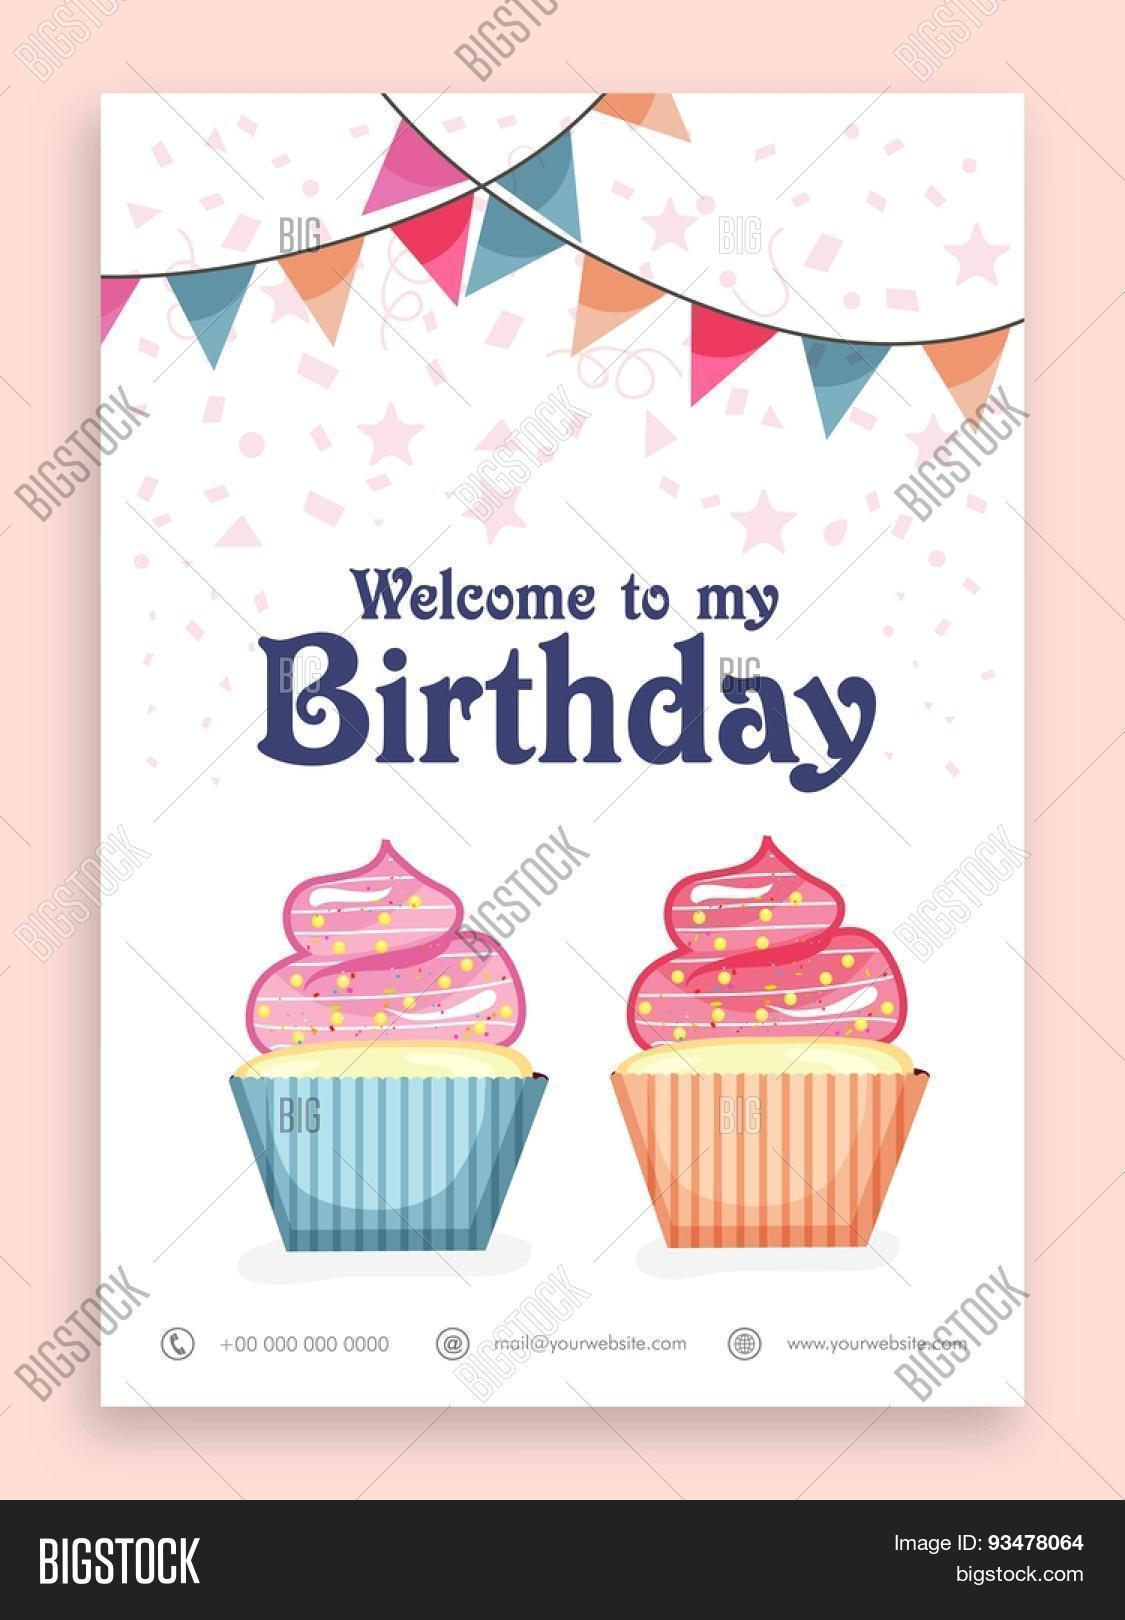 Birthday Party Vector & Photo (Free Trial) | Bigstock